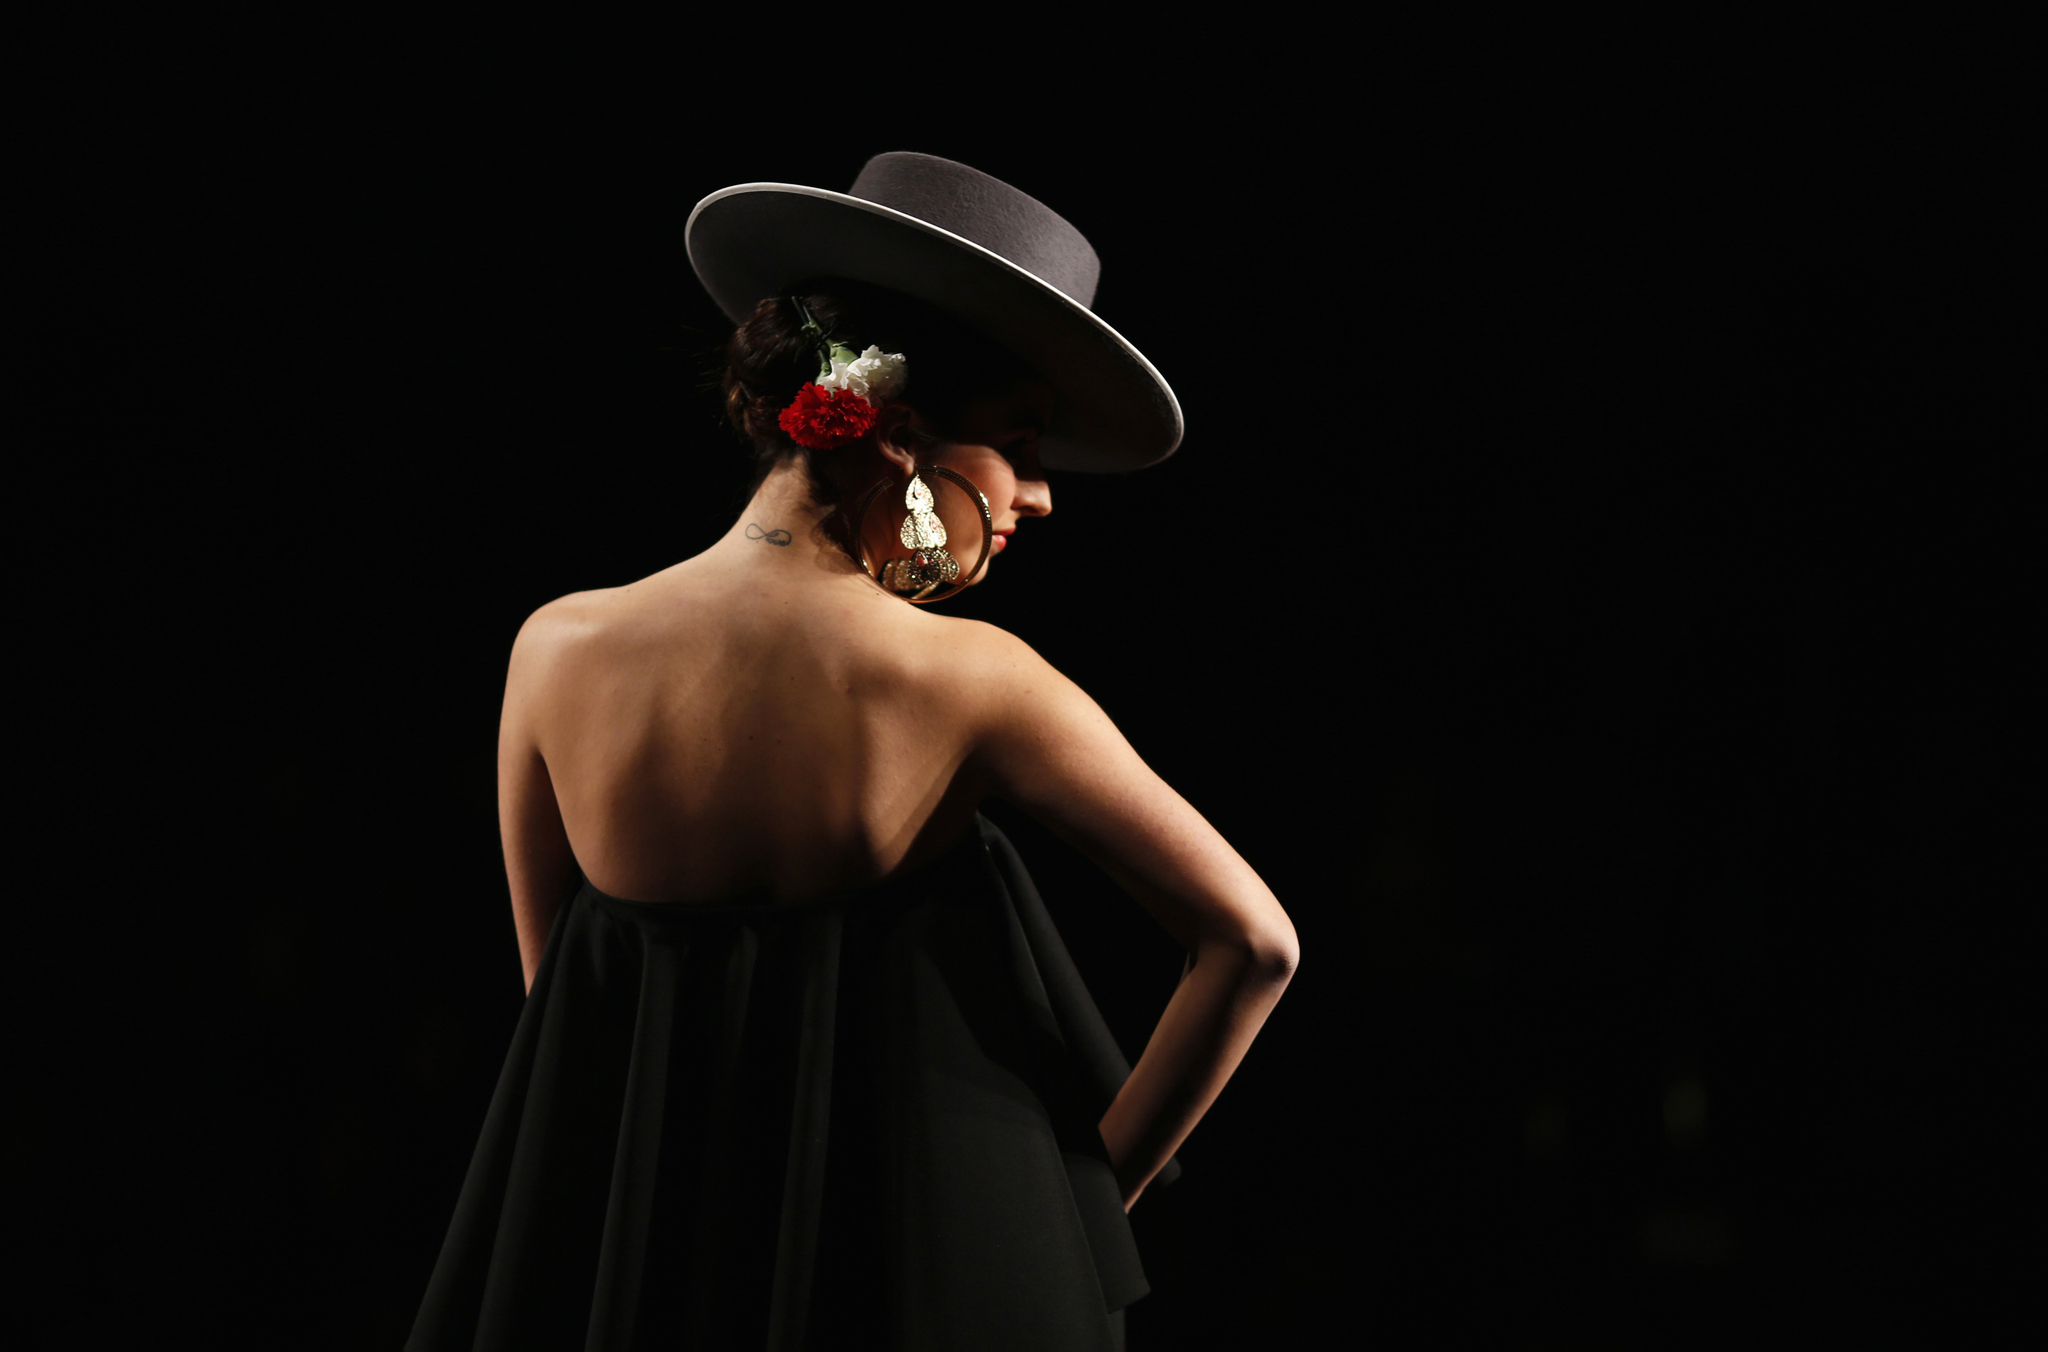 Model presents creation by Carmen G. Vazquez during the International Flamenco Fashion Show SIMOF in the Andalusian capital of Seville...A model presents a creation by Carmen G. Vazquez during the International Flamenco Fashion Show SIMOF in the Andalusian capital of Seville January 30, 2014. The show will run until February 2. REUTERS/Marcelo del Pozo